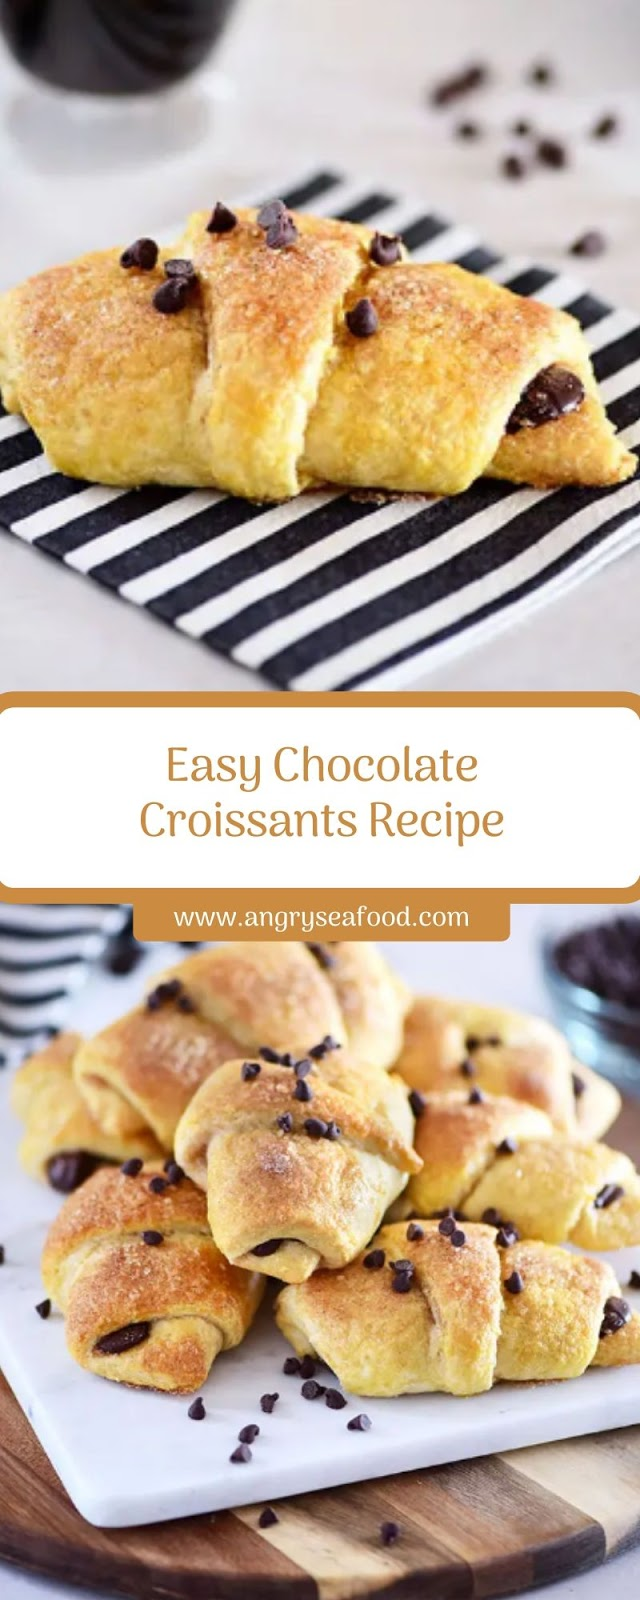 Dessert With Crescent Rolls Chocolate Chips Dessert With Cres In 2020 Easy Dessert Recipes Chocolate Healthy Dessert Recipes Chocolate Desserts With Chocolate Chips